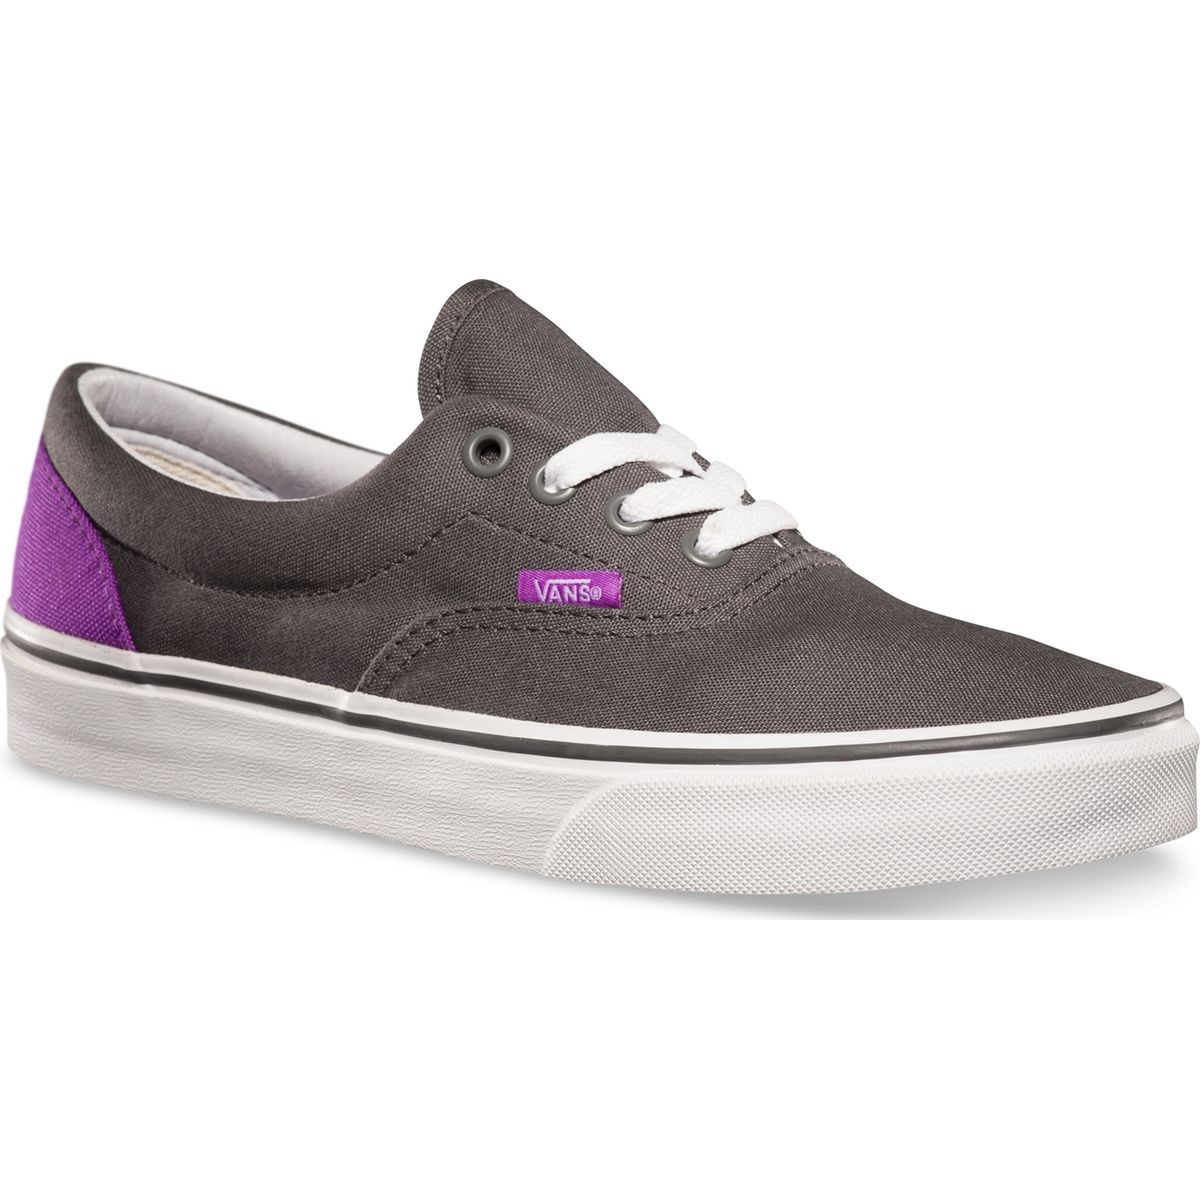 Vans ERA Heel Pop Shoes - Pewter / Neon Purple